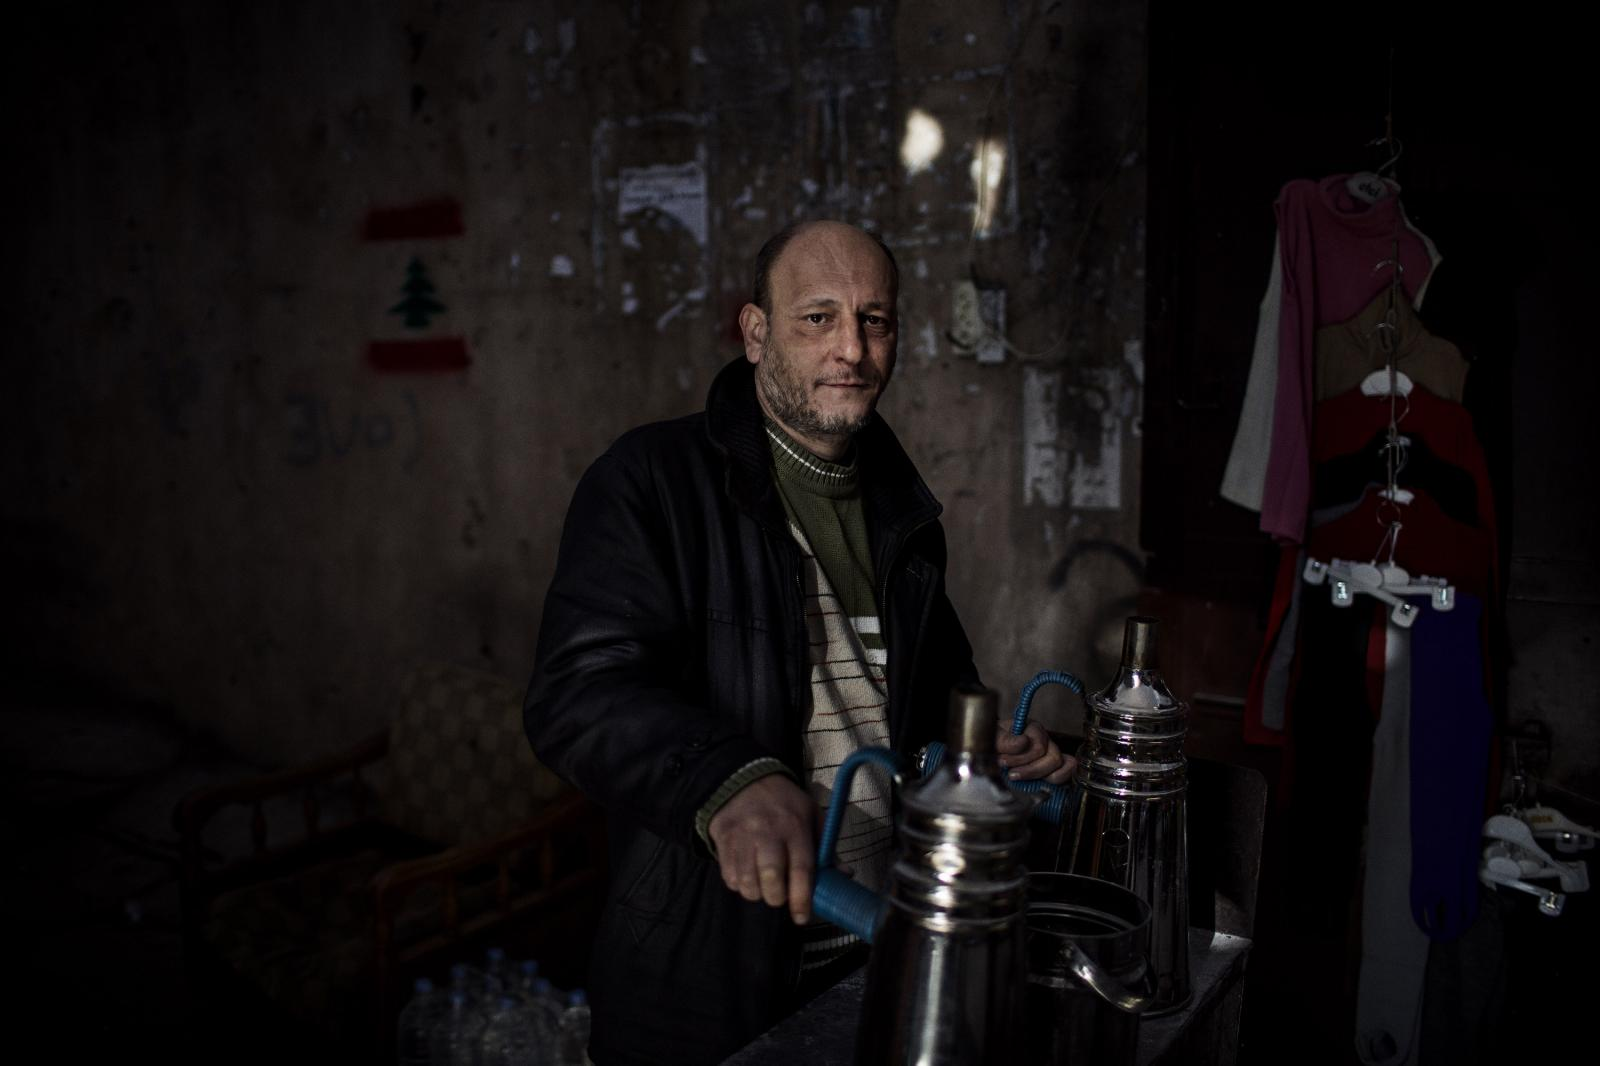 """Khaled el-Mufdi, a coffeemaker: """" I started making coffee a year ago. The economic situation is very bad. It's been gone from bad to worse in the past three months. Could it get worse than this? All of these politicians needs to go. New, good people need to come in. I have no hope. If I'm honest I have no hope. Tripoli. Lebanon. December 11th, 2019. Diego Ibarra Sánchez for CNN"""